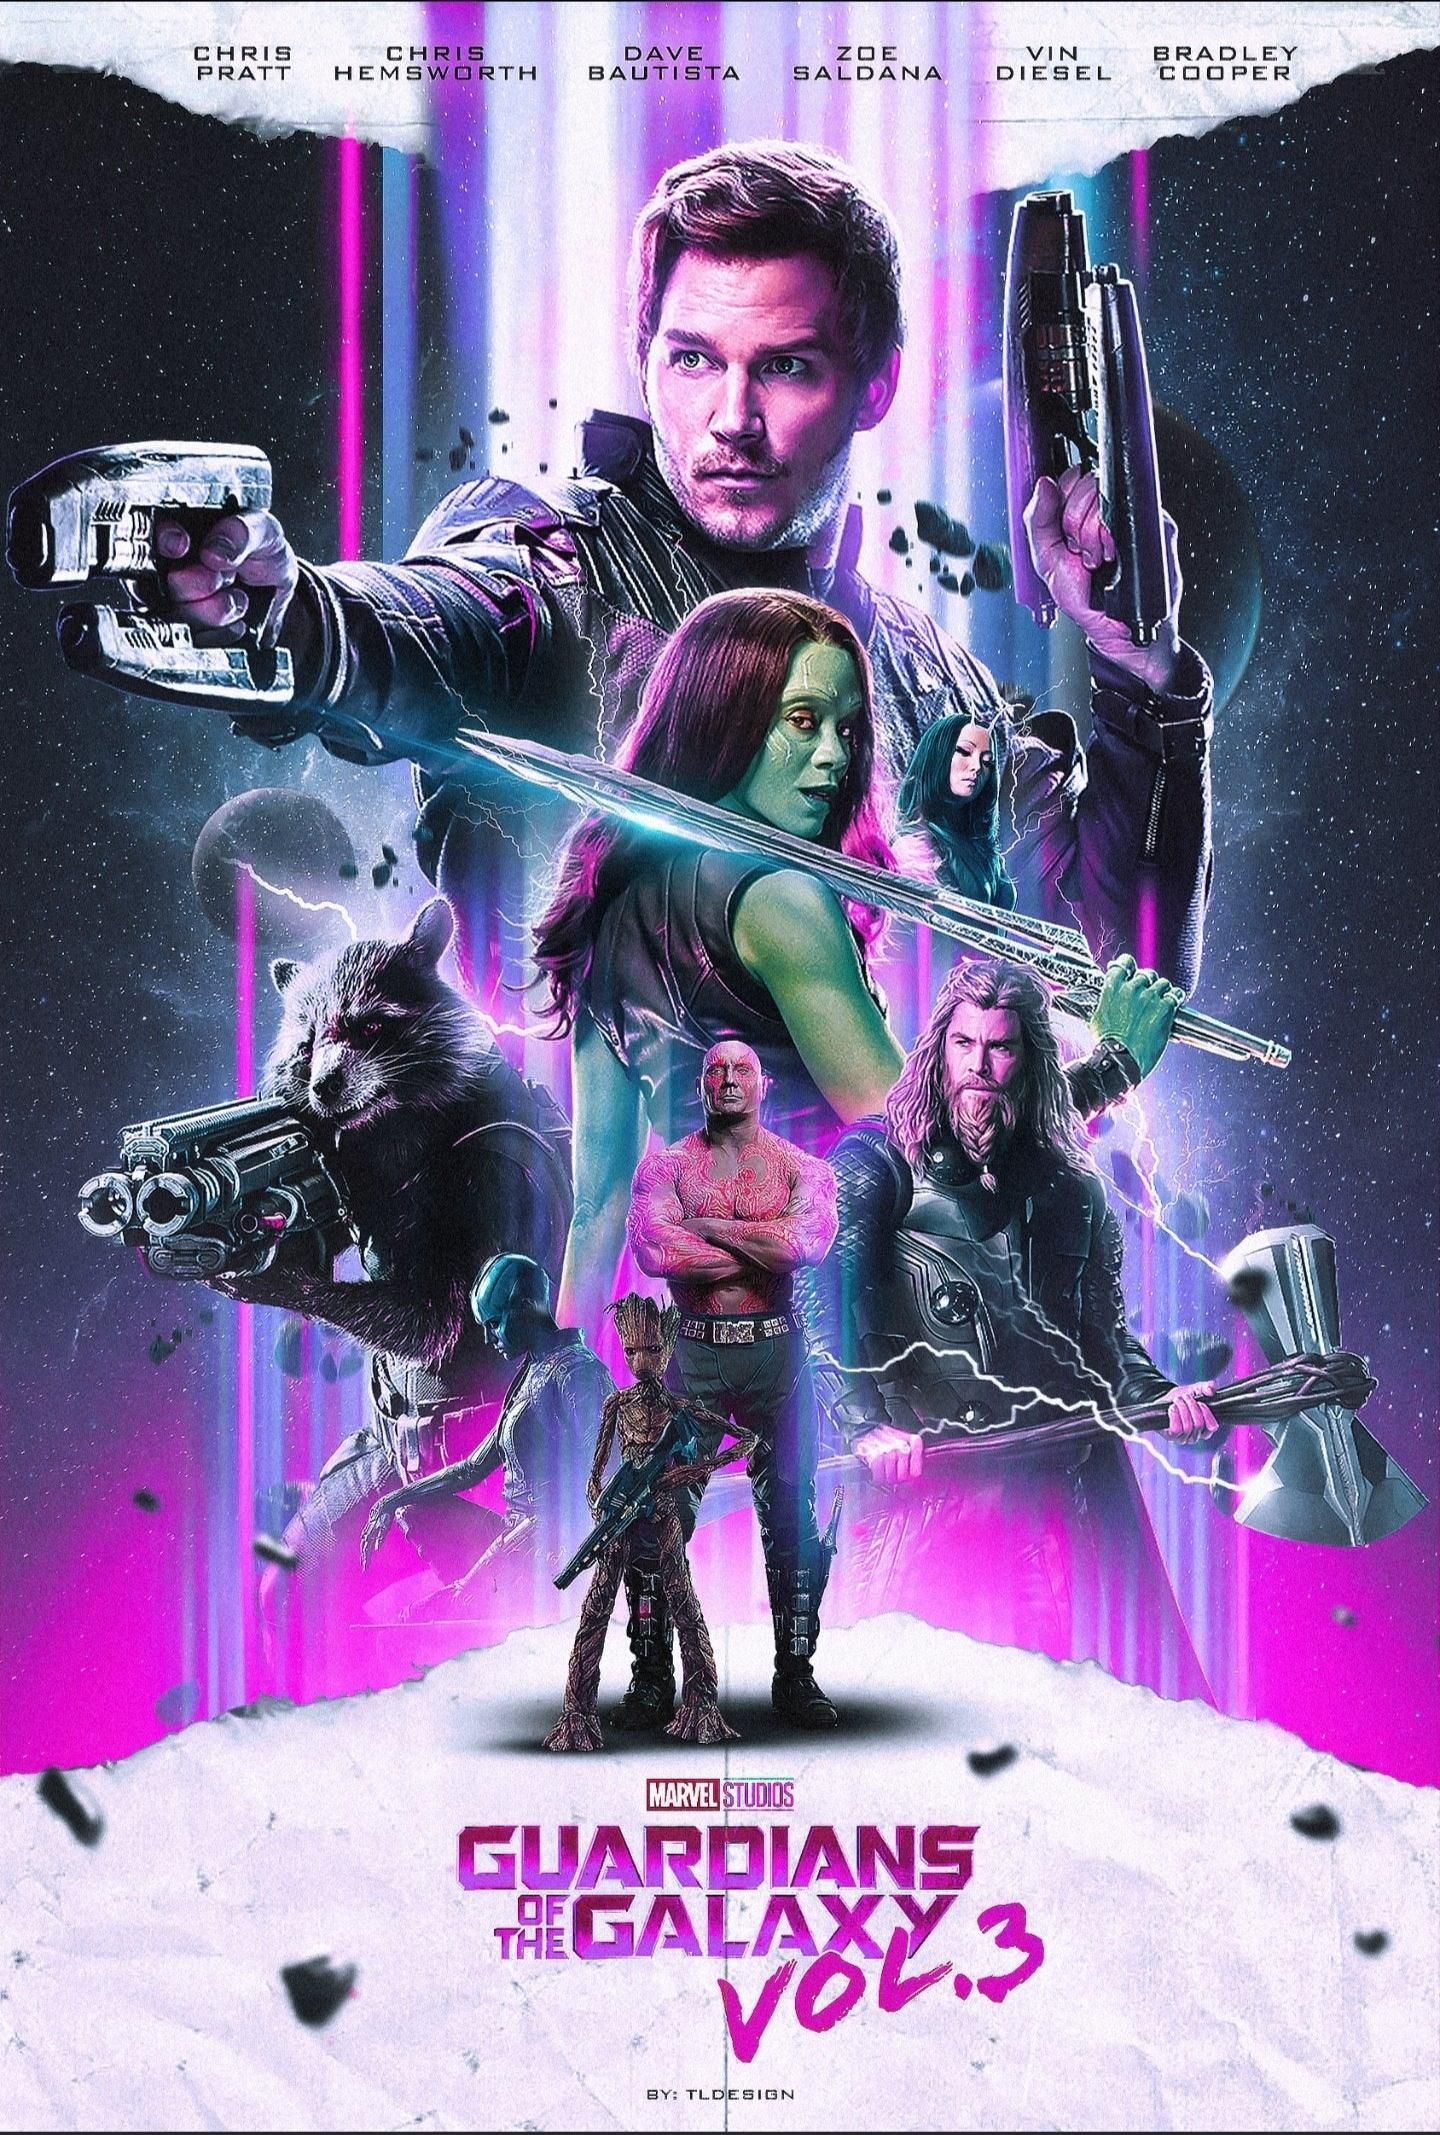 Guardians Of The Galaxy Vol 3 2022 1440 2135 By Tl Design Avengers Pictures Marvel Superheroes Marvel Comic Universe